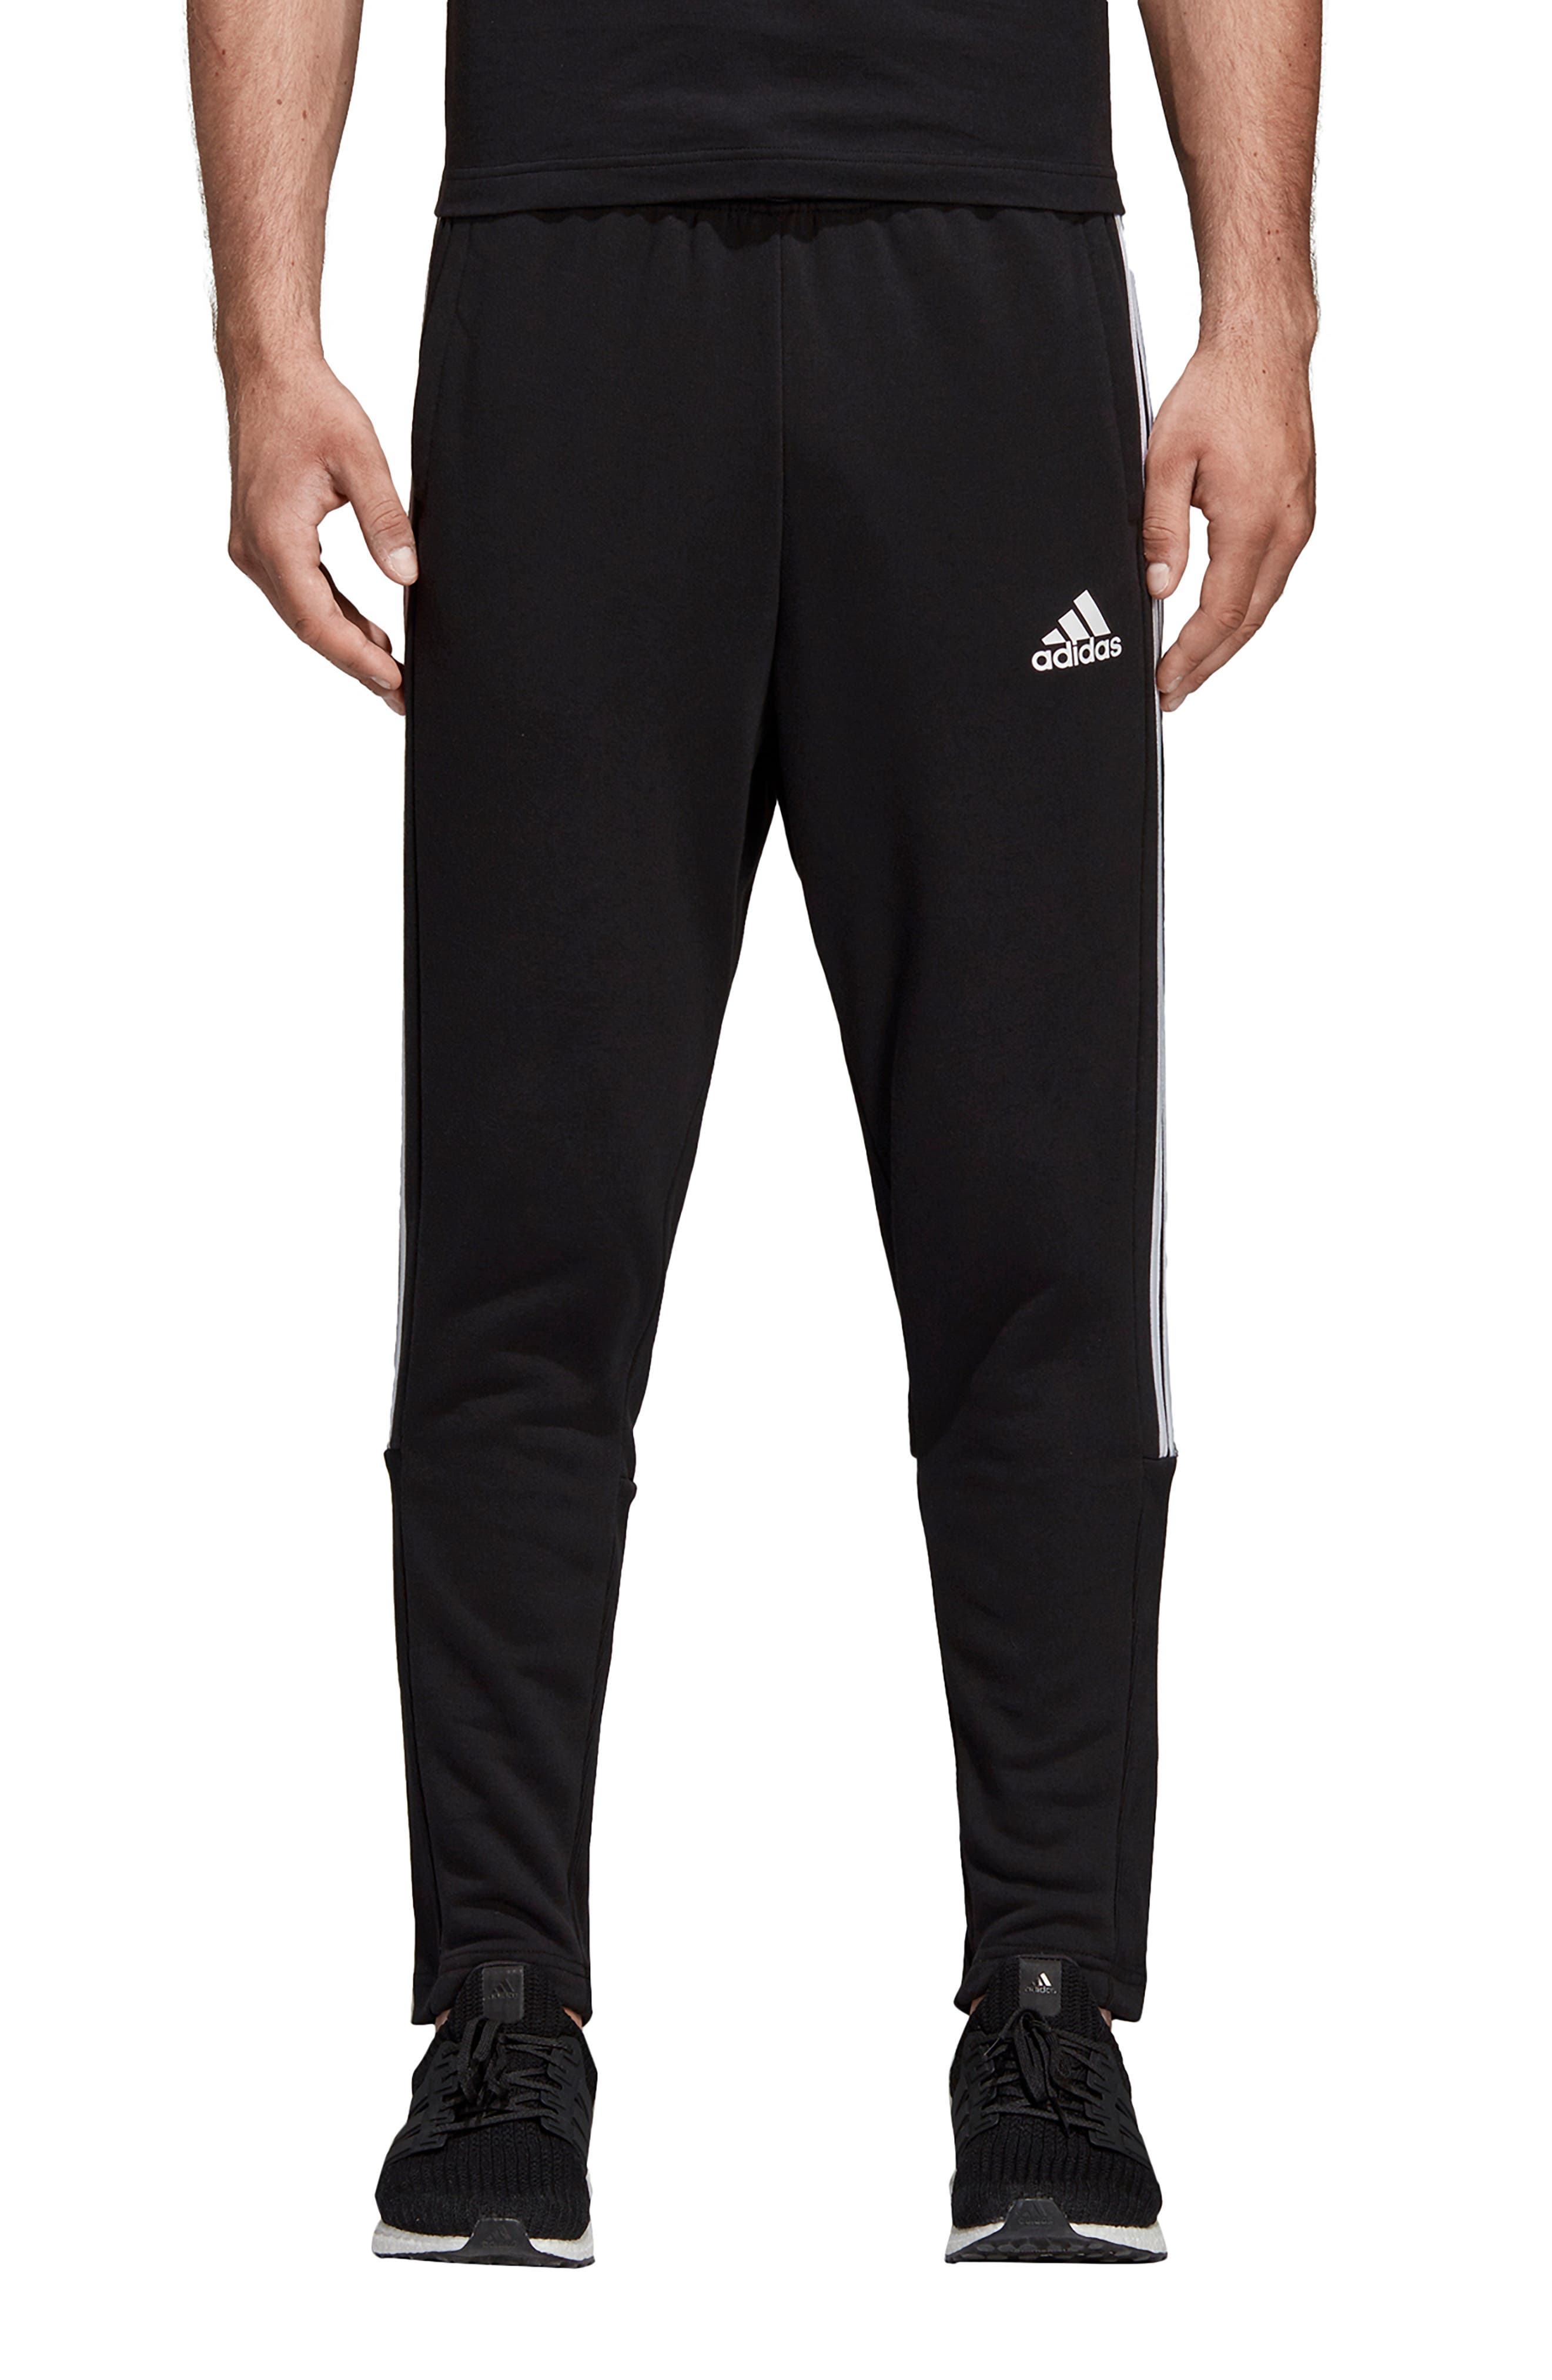 ADIDAS, MH 3S Tiro Sweatpants, Main thumbnail 1, color, BLACK/ WHITE